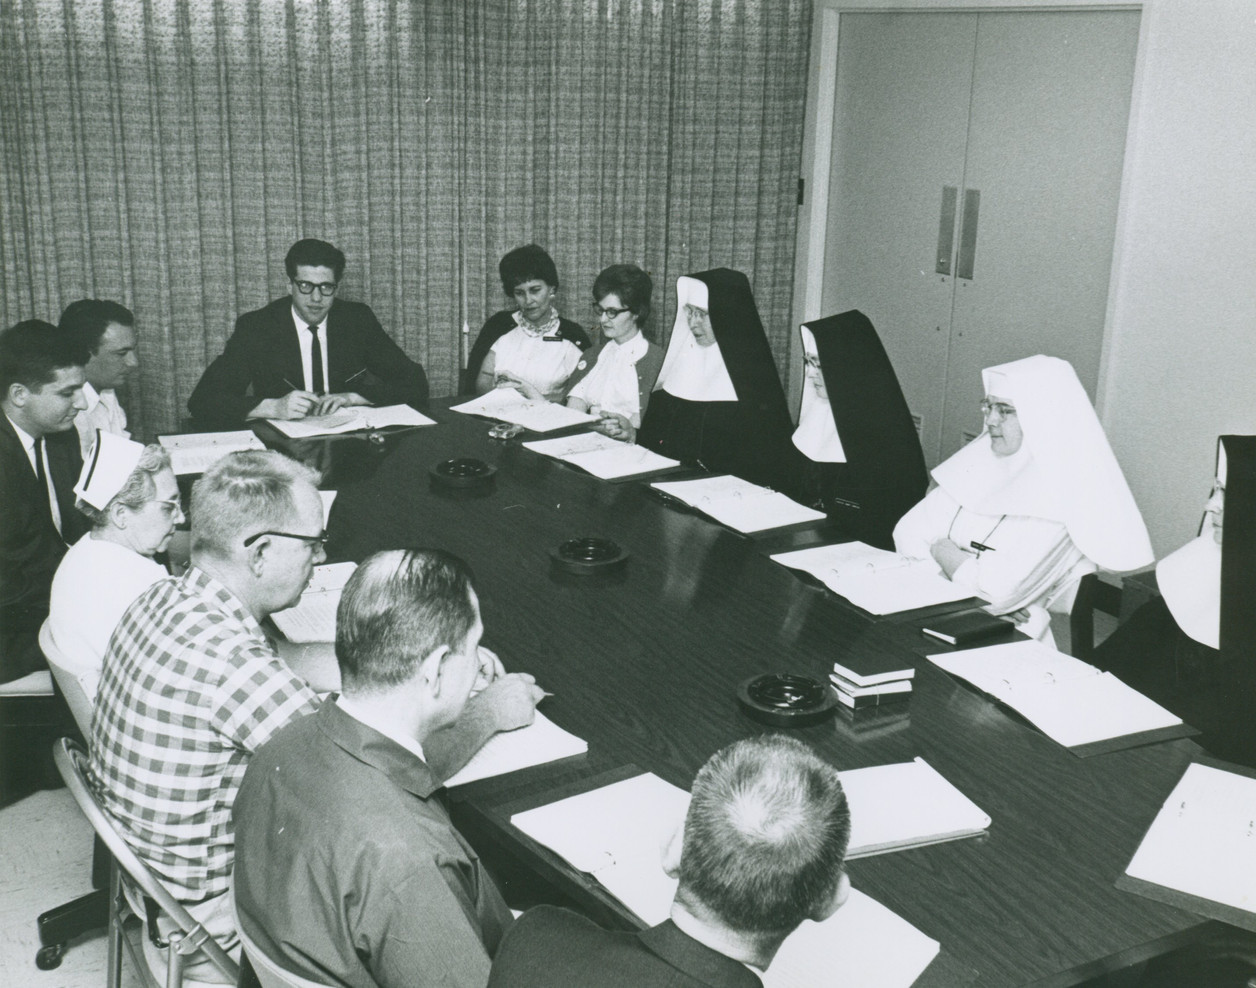 From the very beginning, Sisters have worked closely with lay professionals, beginning with doctors with whom they worked side-by-side at the Santa Rosa Infirmary when it was established in 1869.